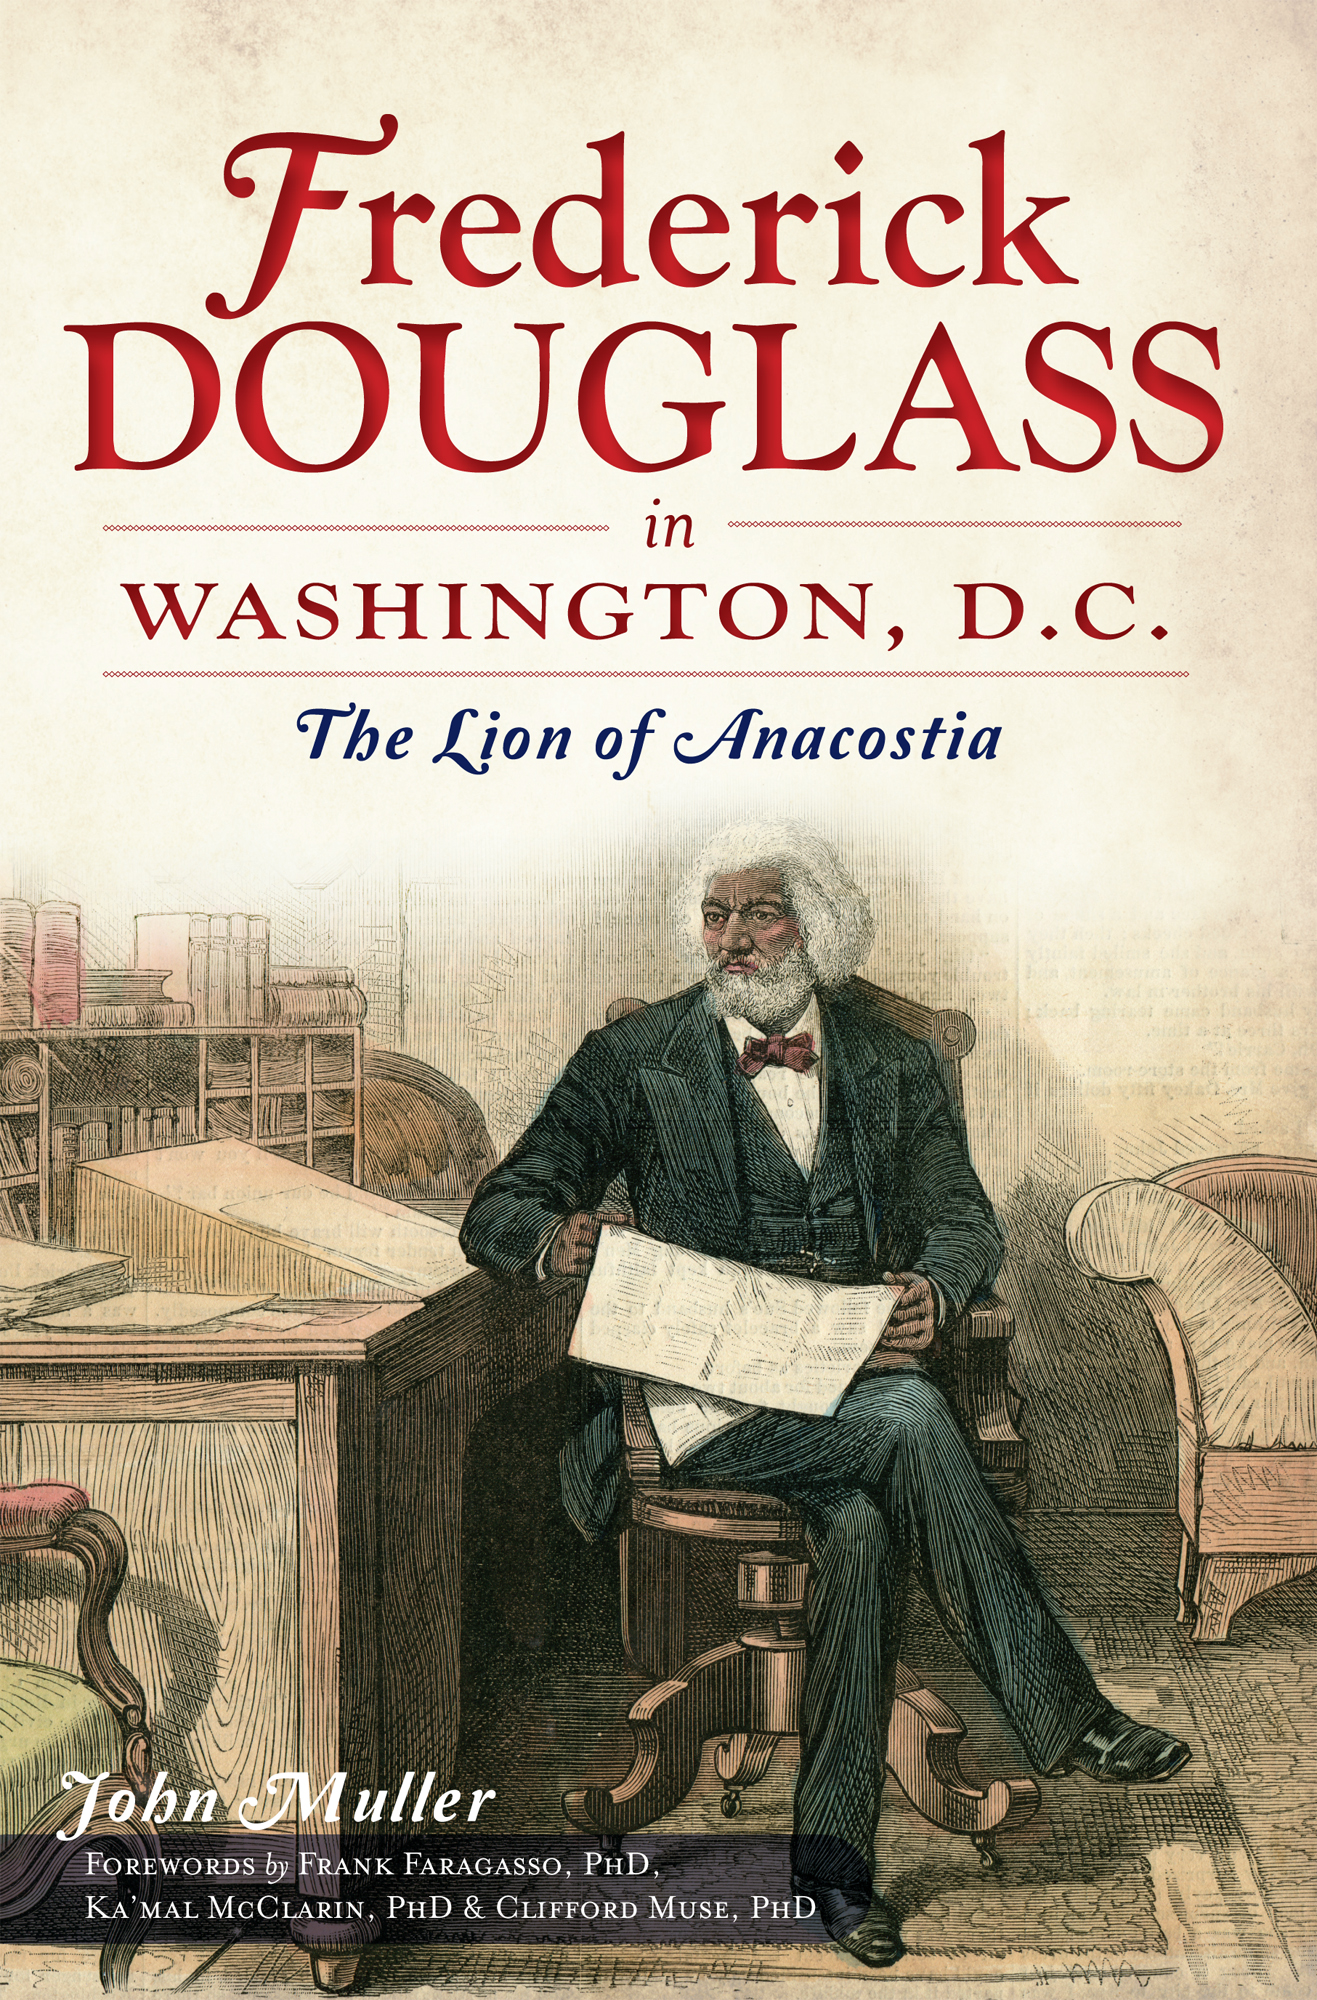 book frederick douglass in washington d c the lion of anacostia cover frederick douglass in washington dc by john muller the history press oct 2012